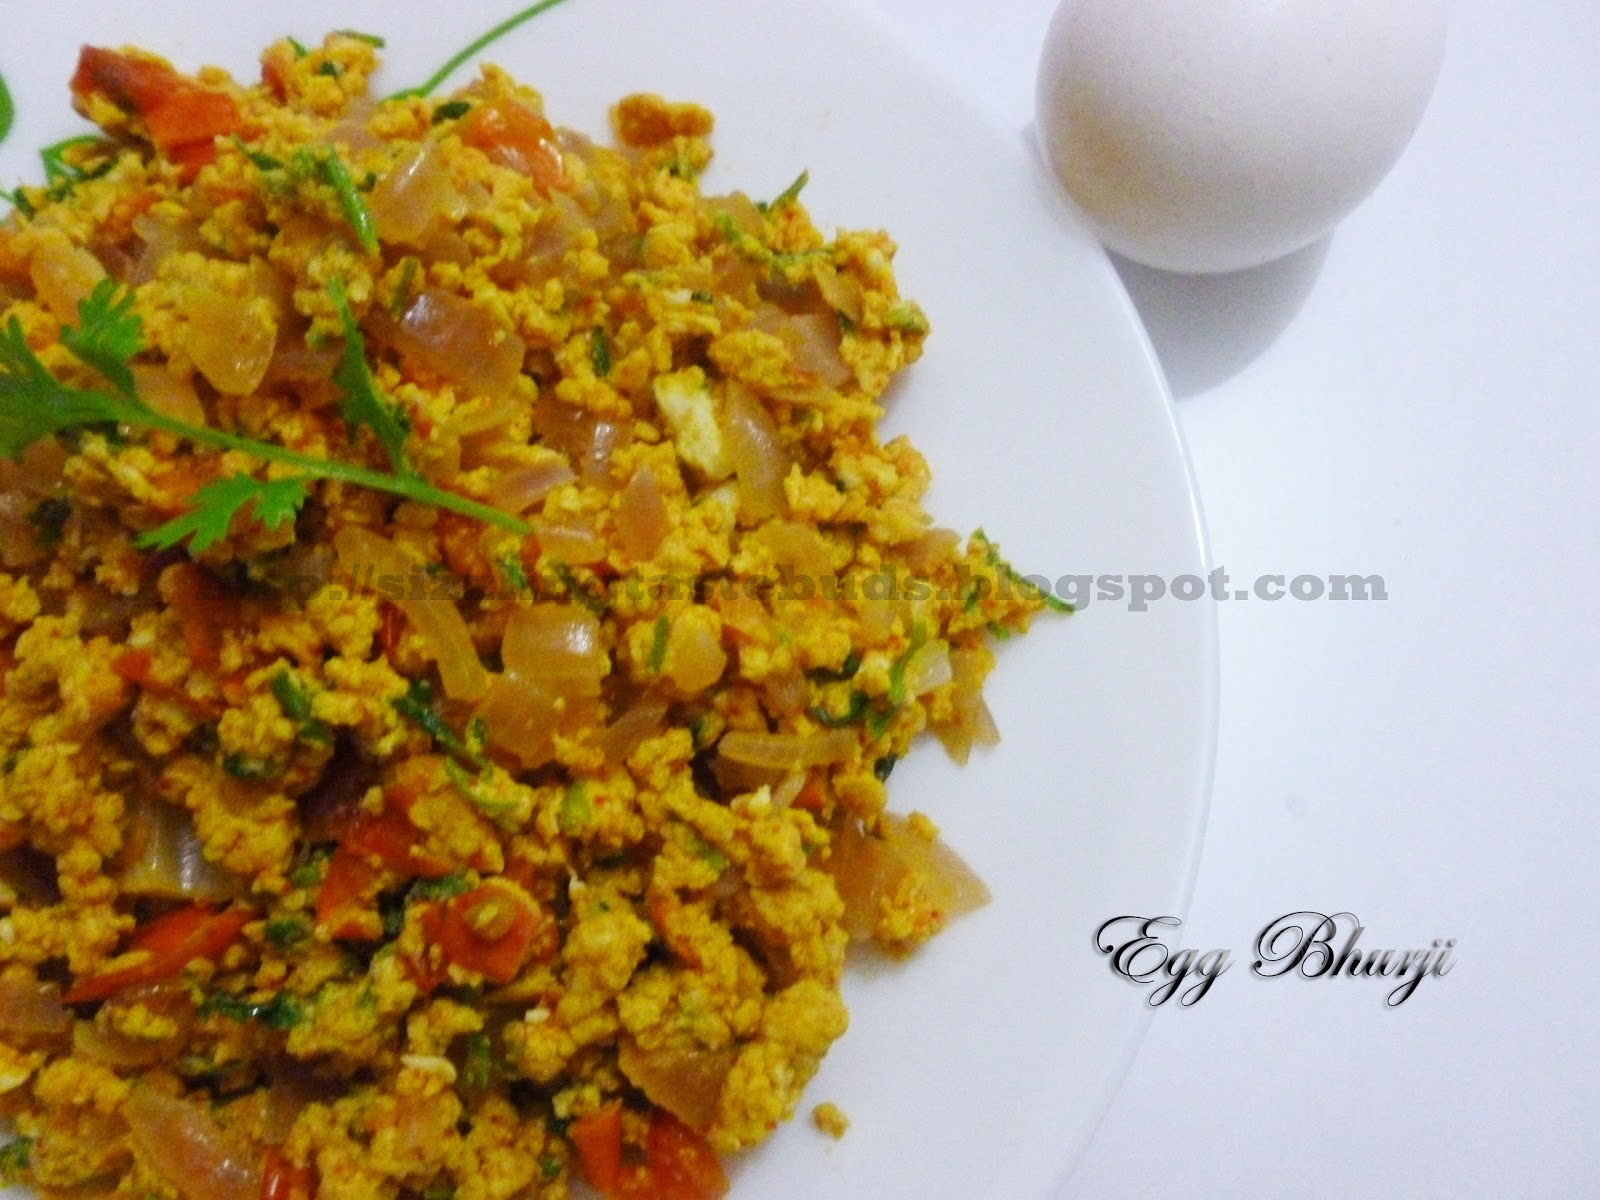 anda bhurji egg bhurji indian scrambled eggs indian anda bhurji spicy ...